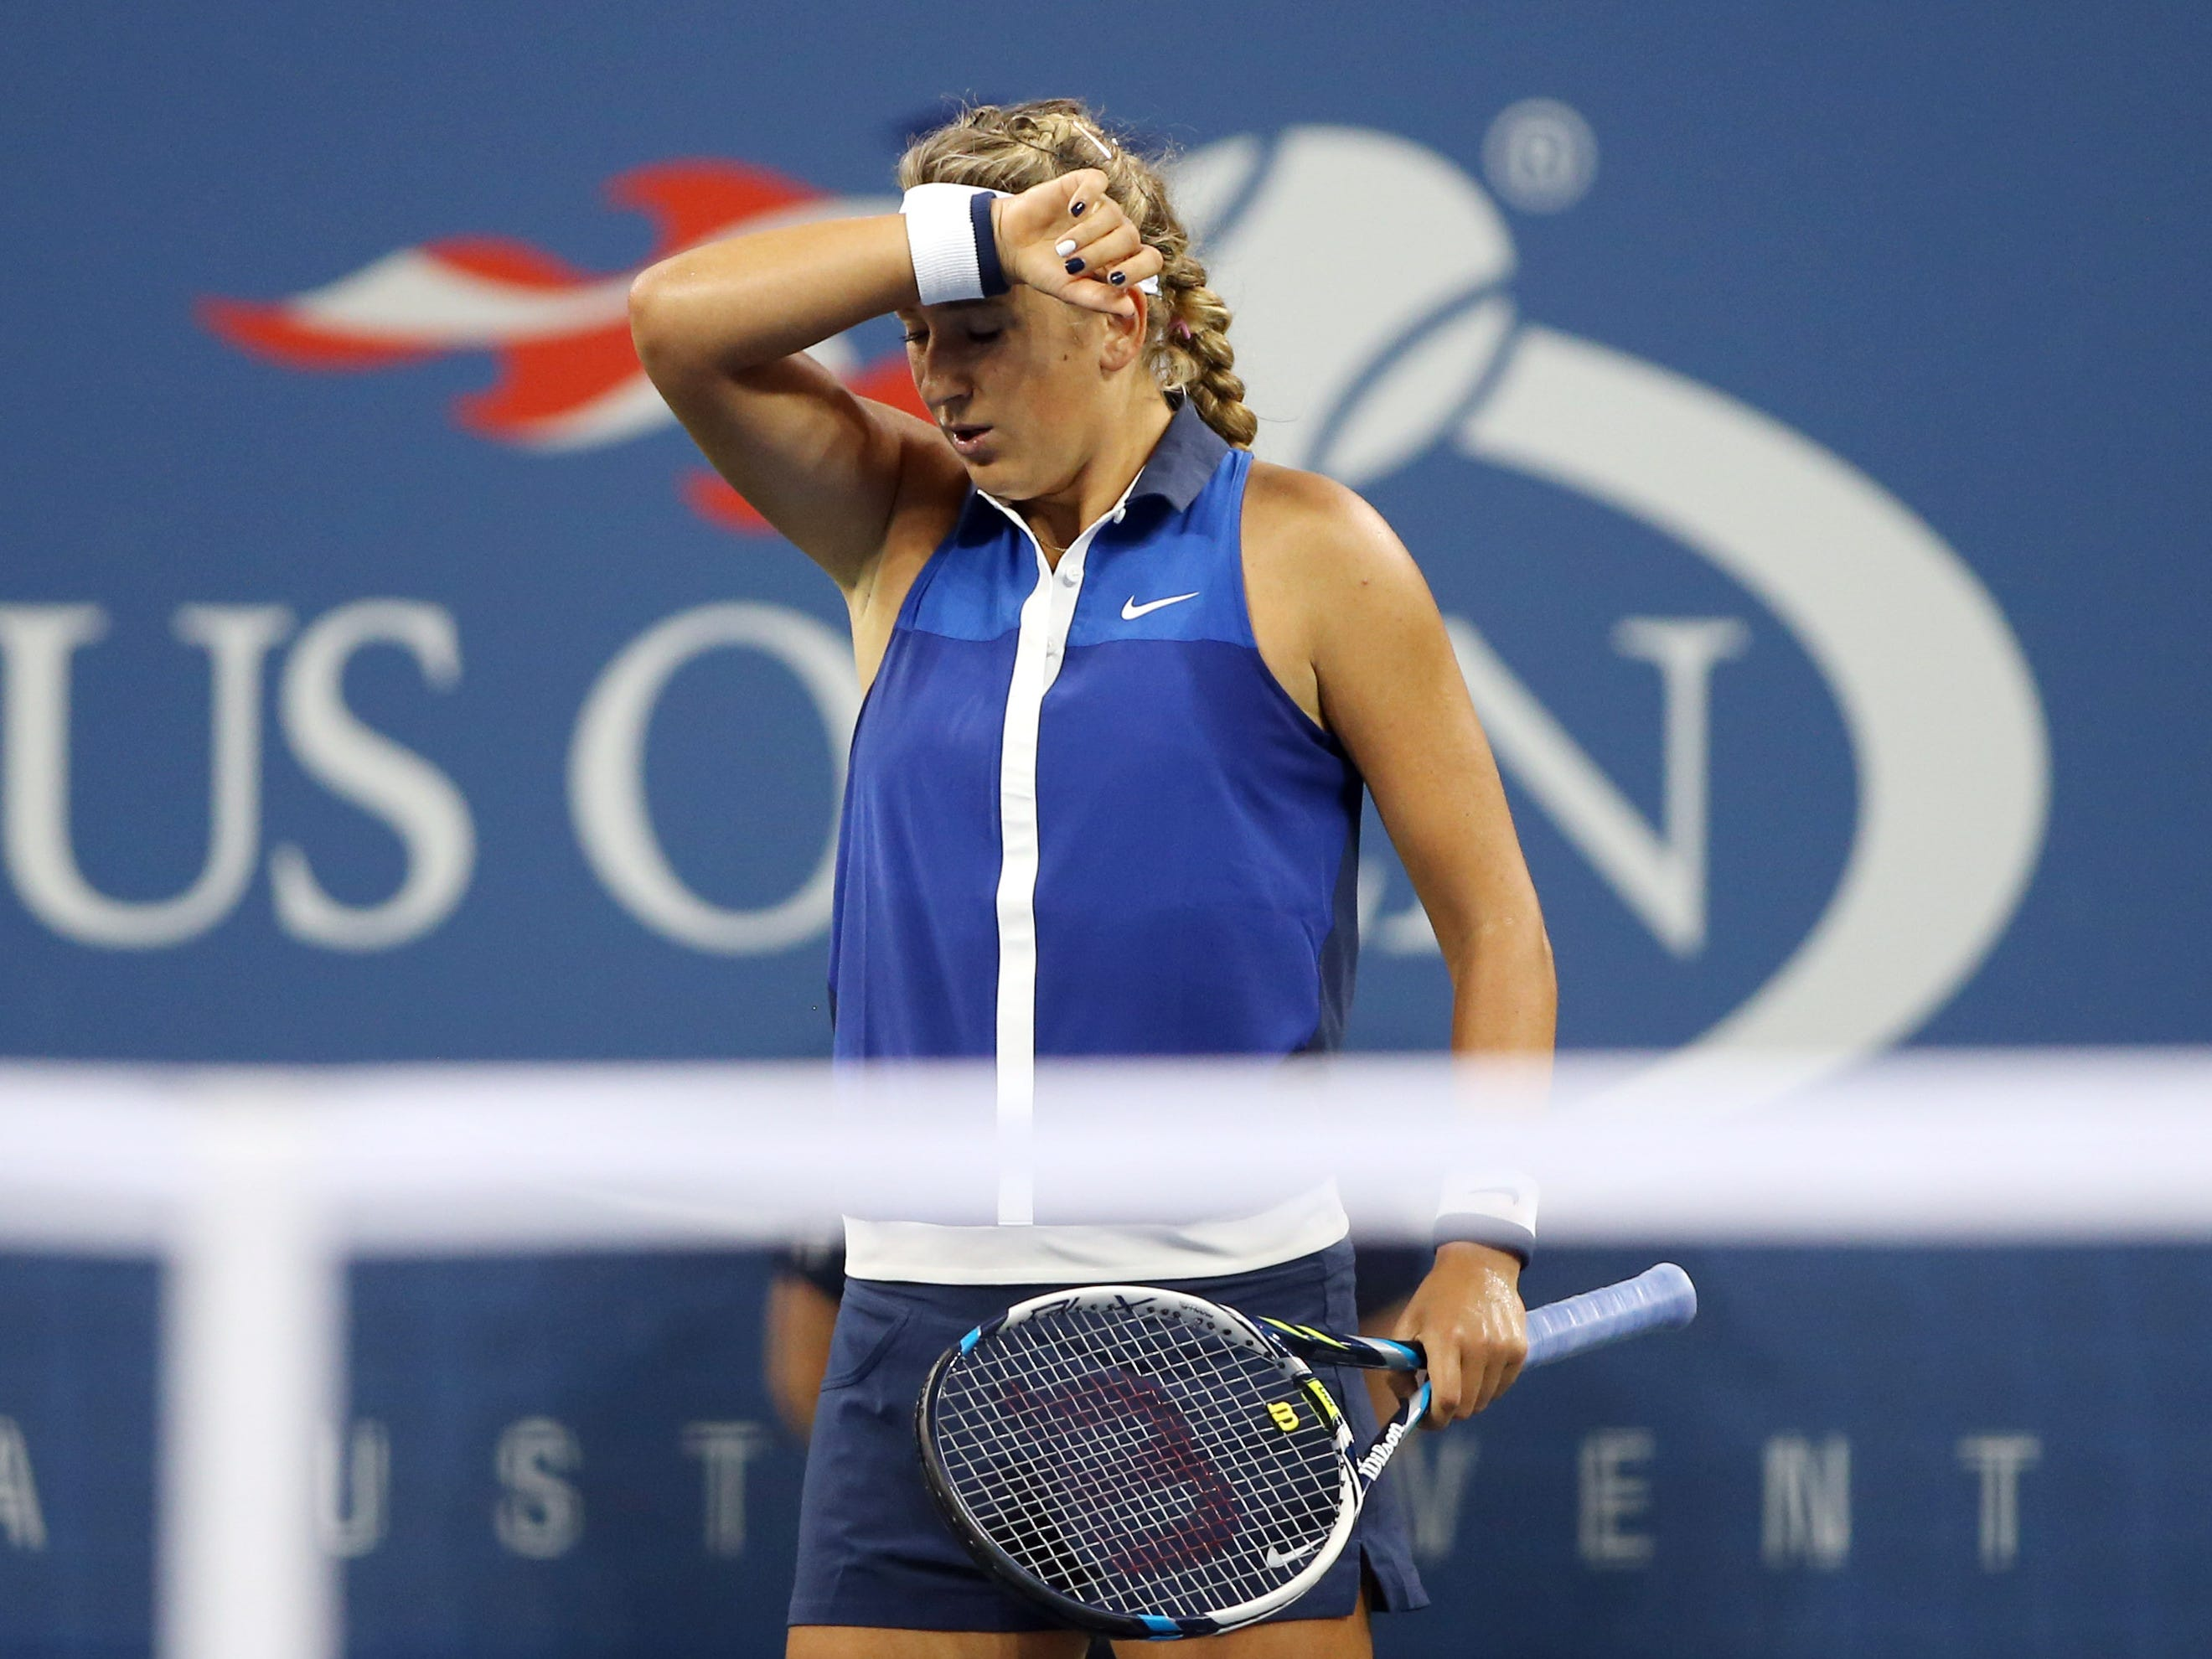 Victoria Azarenka (4-17). Azarenka is a two-time Australian Open champ and former No. 1 who lost to Williams in back-to-back U.S. Open finals (2012-13).